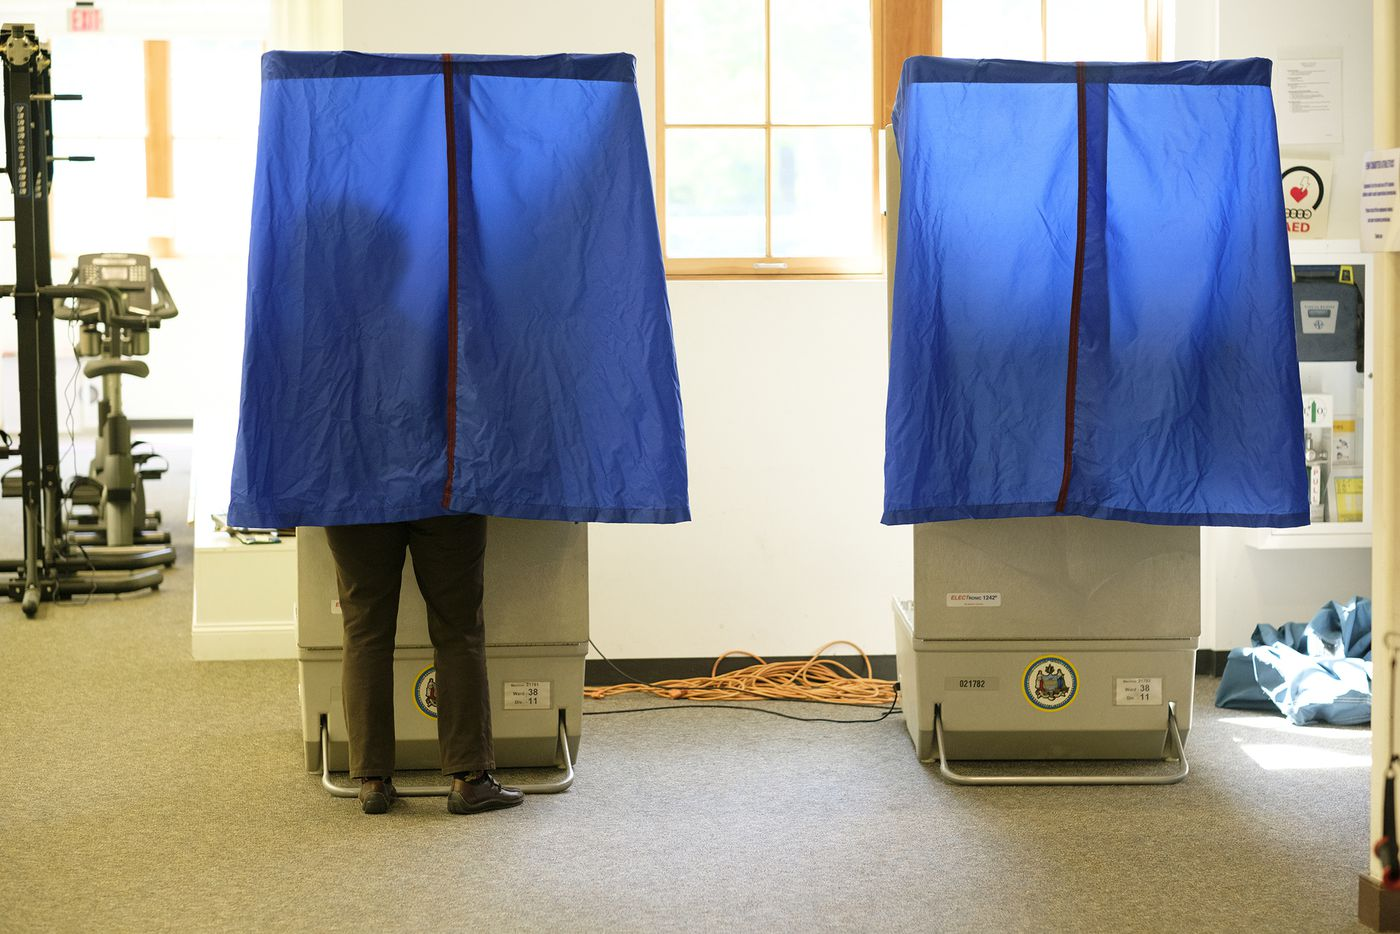 Voters Guide 2017 New Jersey Primary Election Andrew Smith Bermuda Shorts Navy 38 In Will Head To The Polls For On June